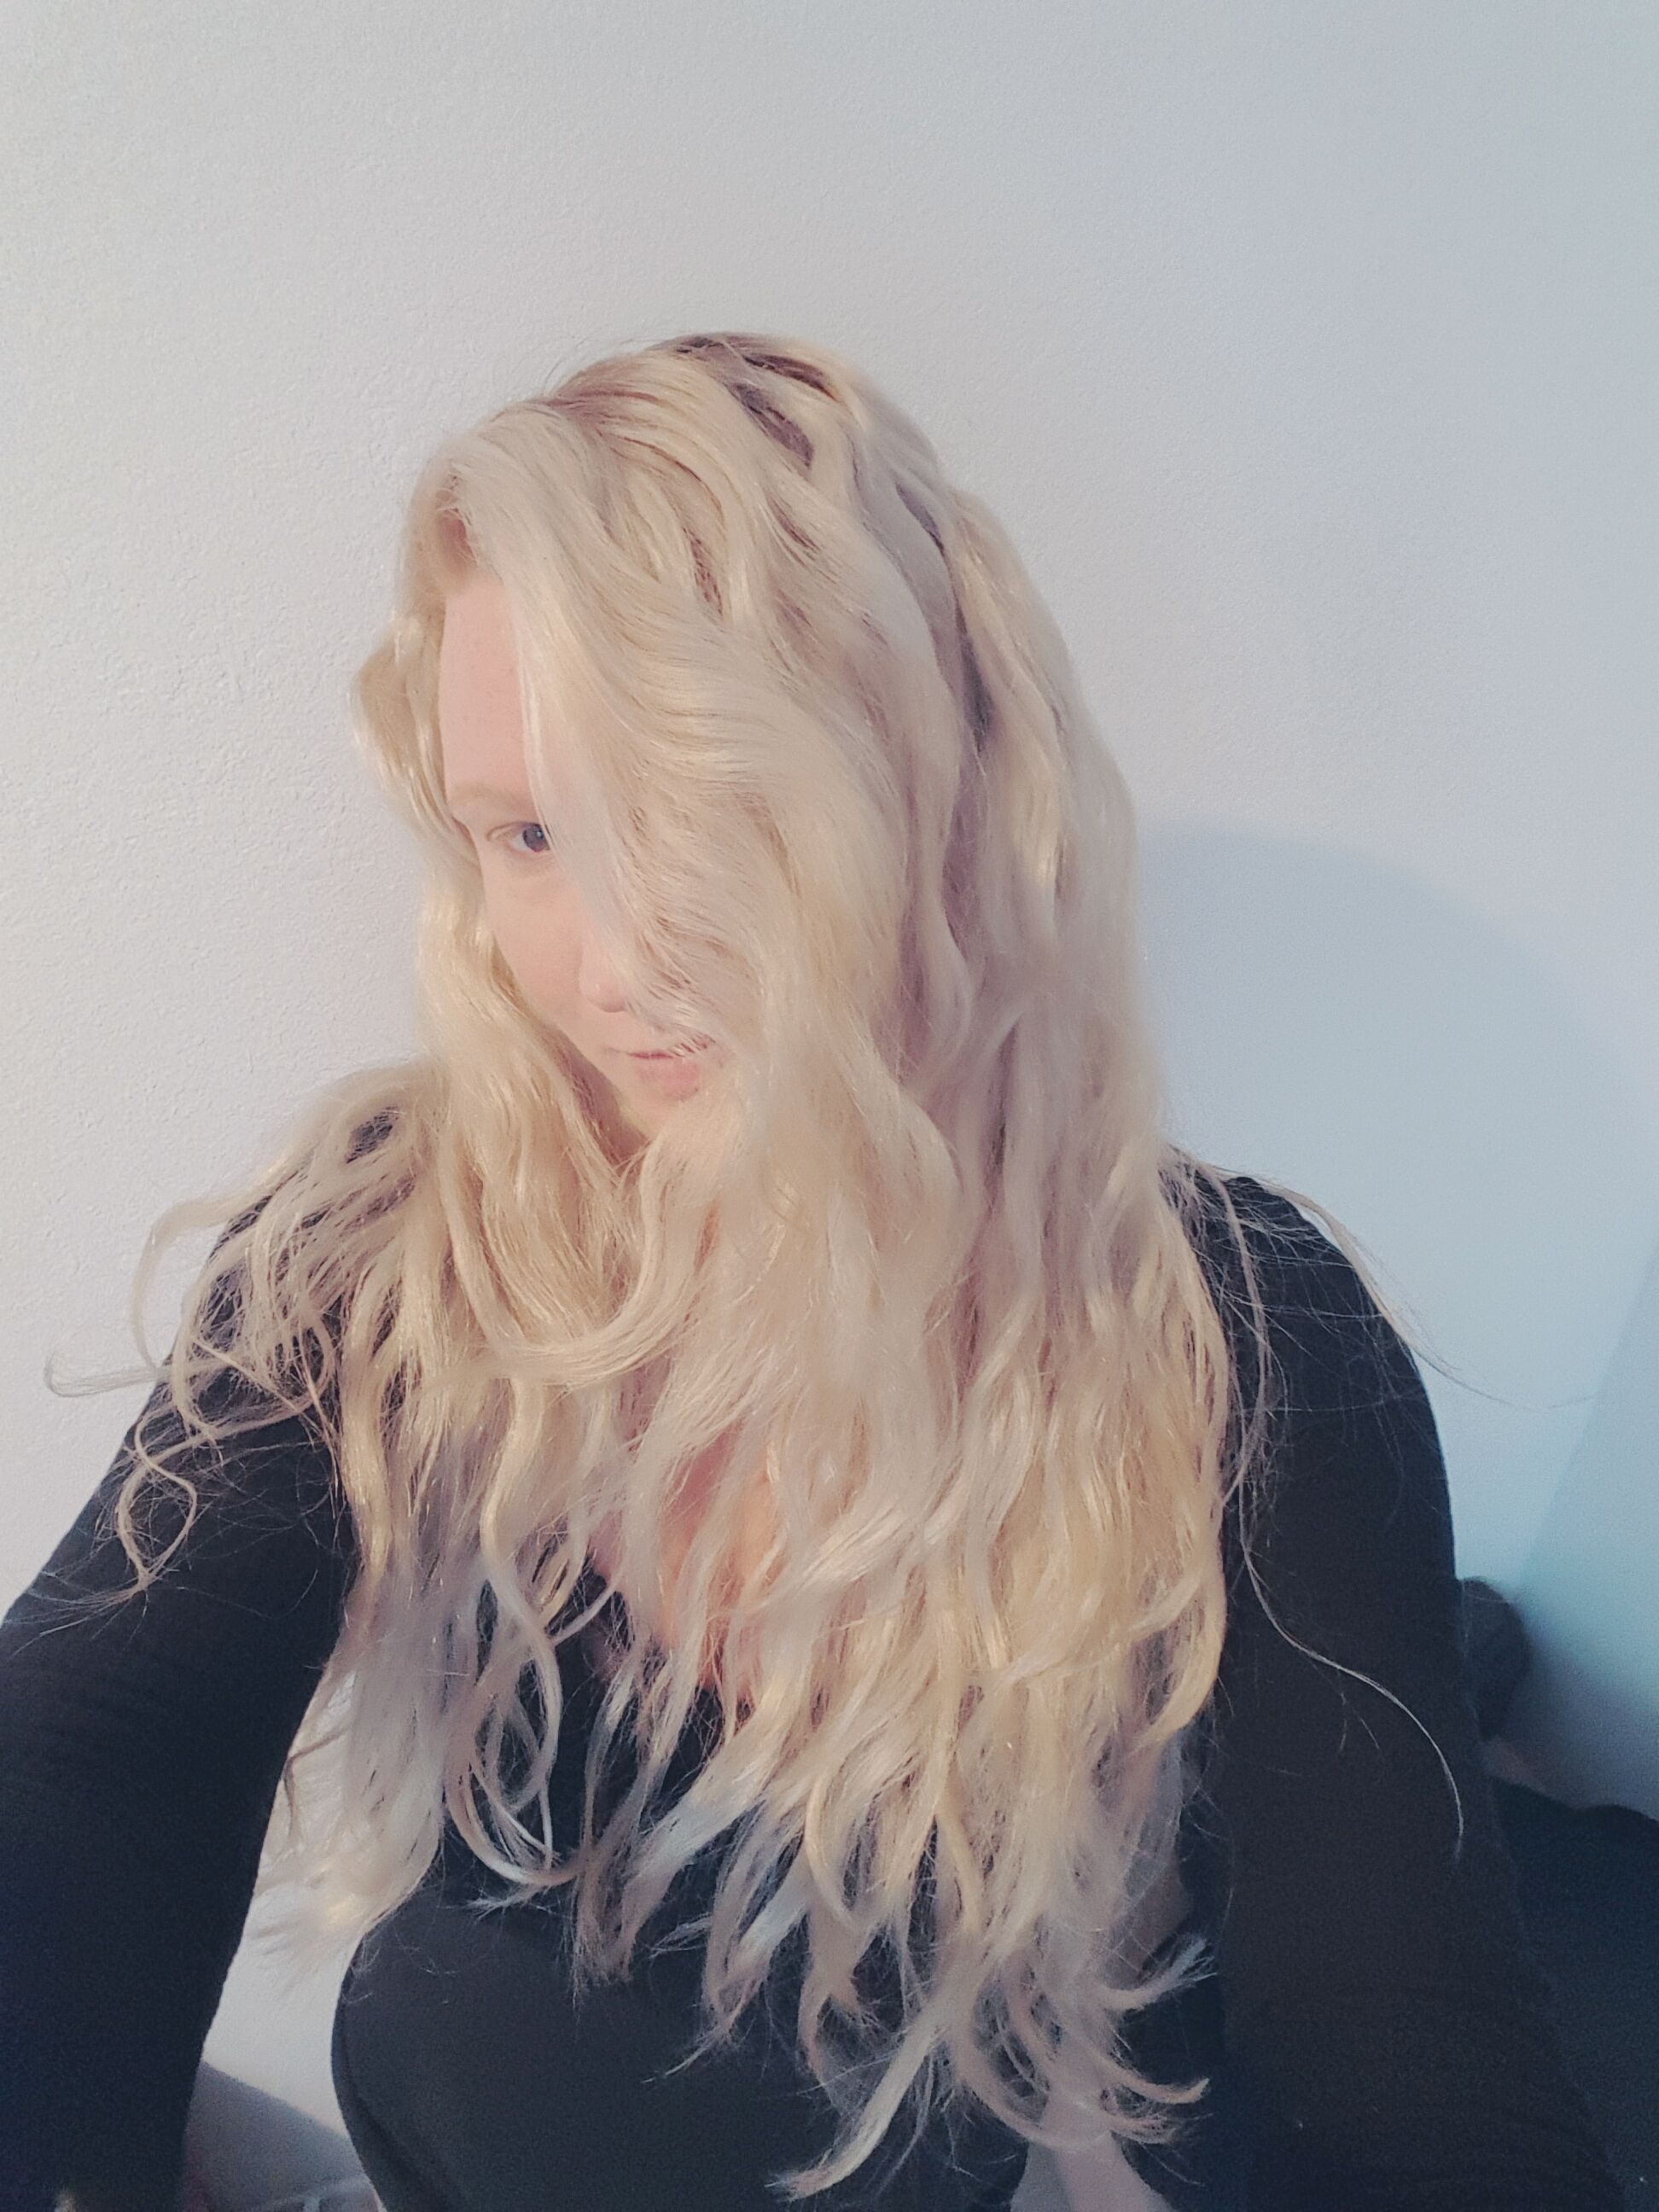 girl with long curly blonde hair used natural haircare products to repair damage